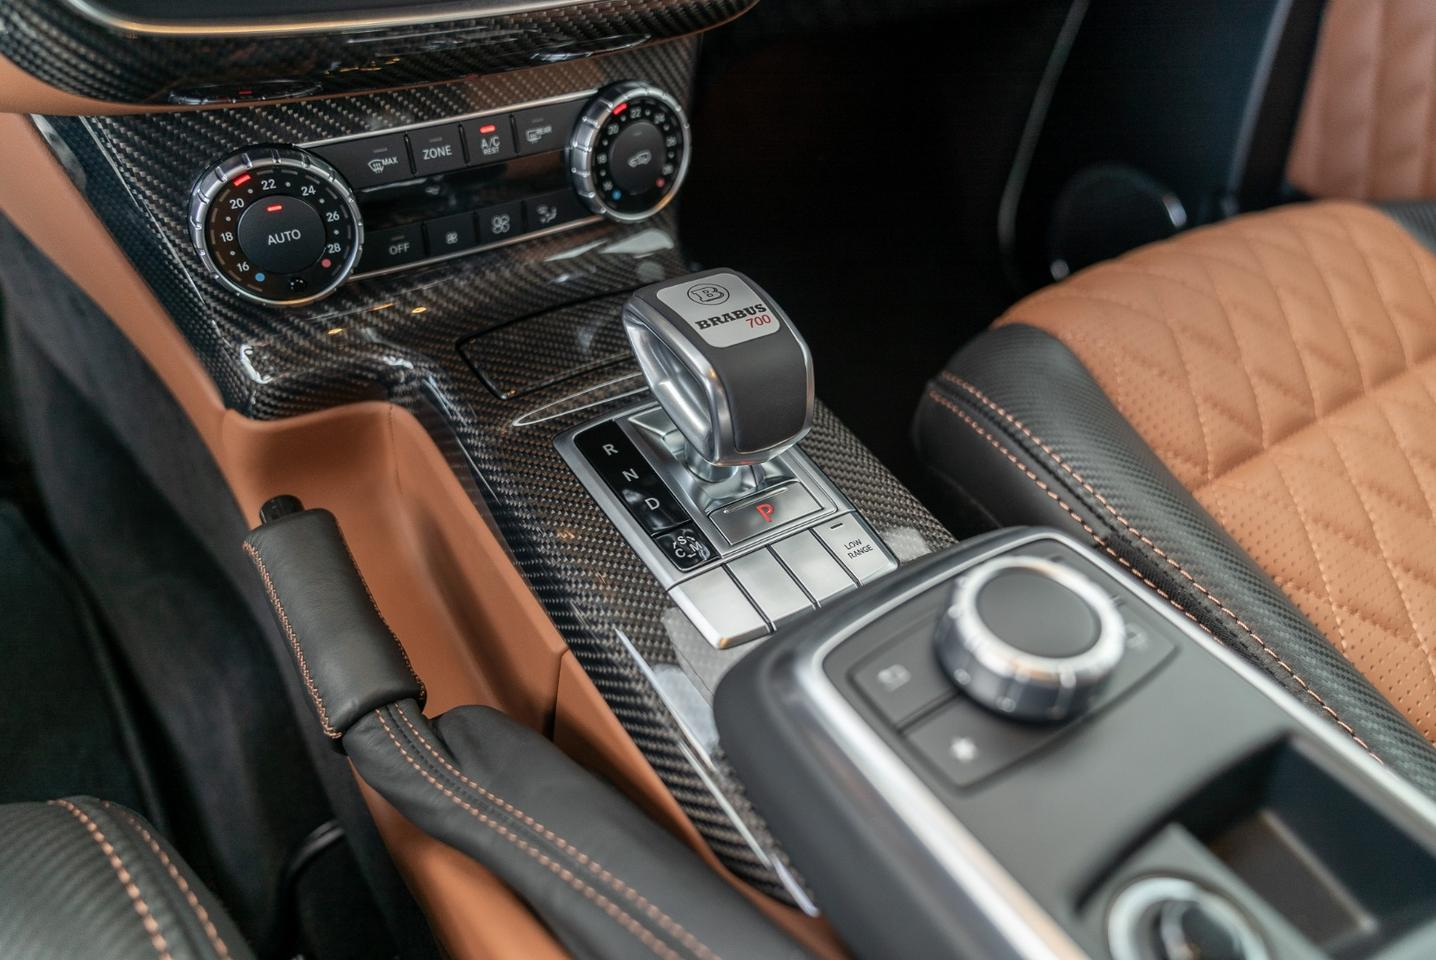 The interior is a two-tone black/brown leather job with carbon accents